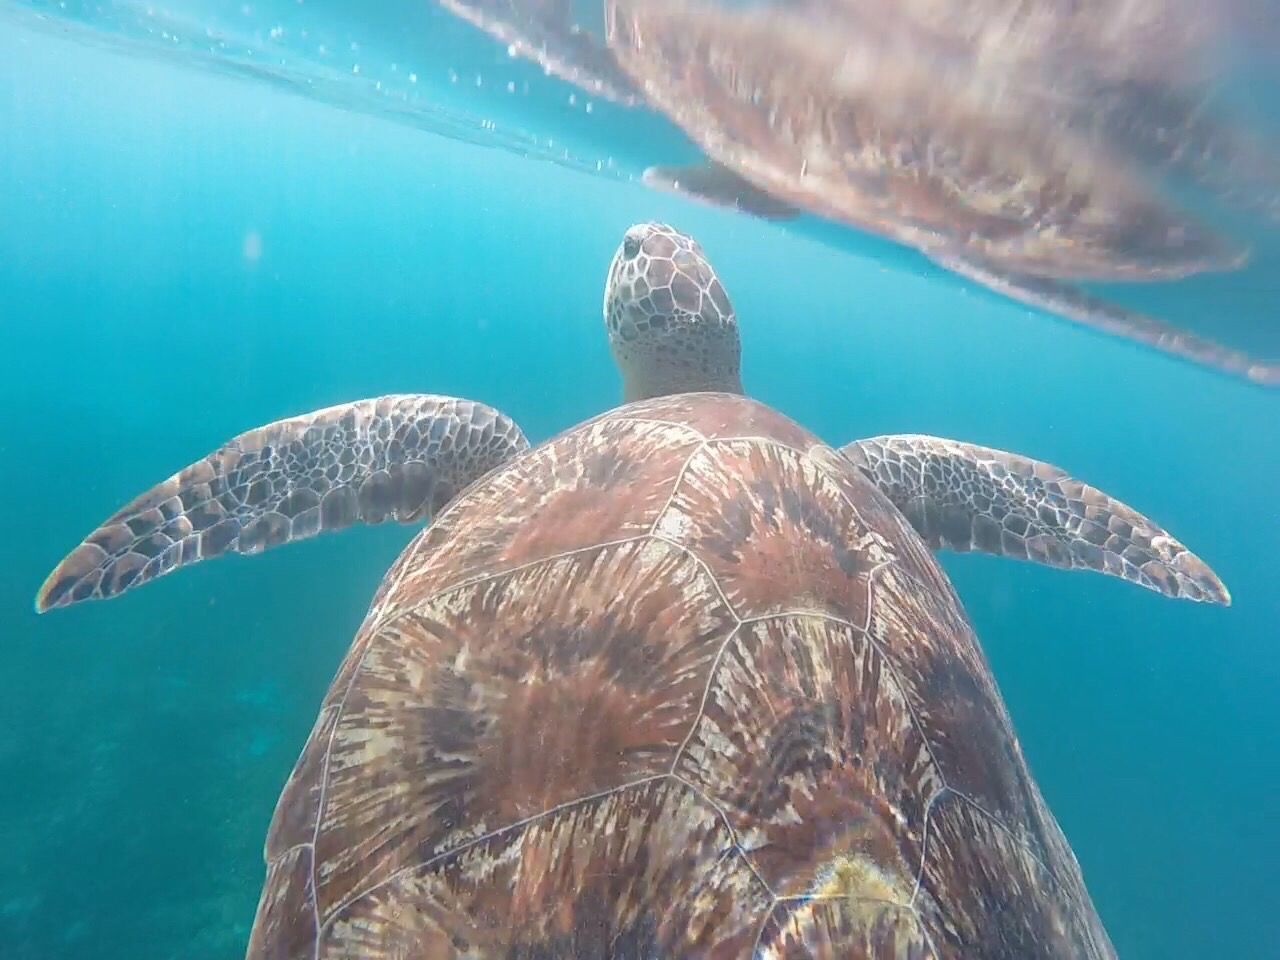 Travel Destinations Martinique Underwater Turtle Animal Themes Sea Life Sea Swimming One Animal UnderSea Animals In The Wild Nature Water Reptile Animal Wildlife Sea Turtle Close-up Scuba Diving Day No People Outdoors https://youtu.be/2fYSAutD-zU